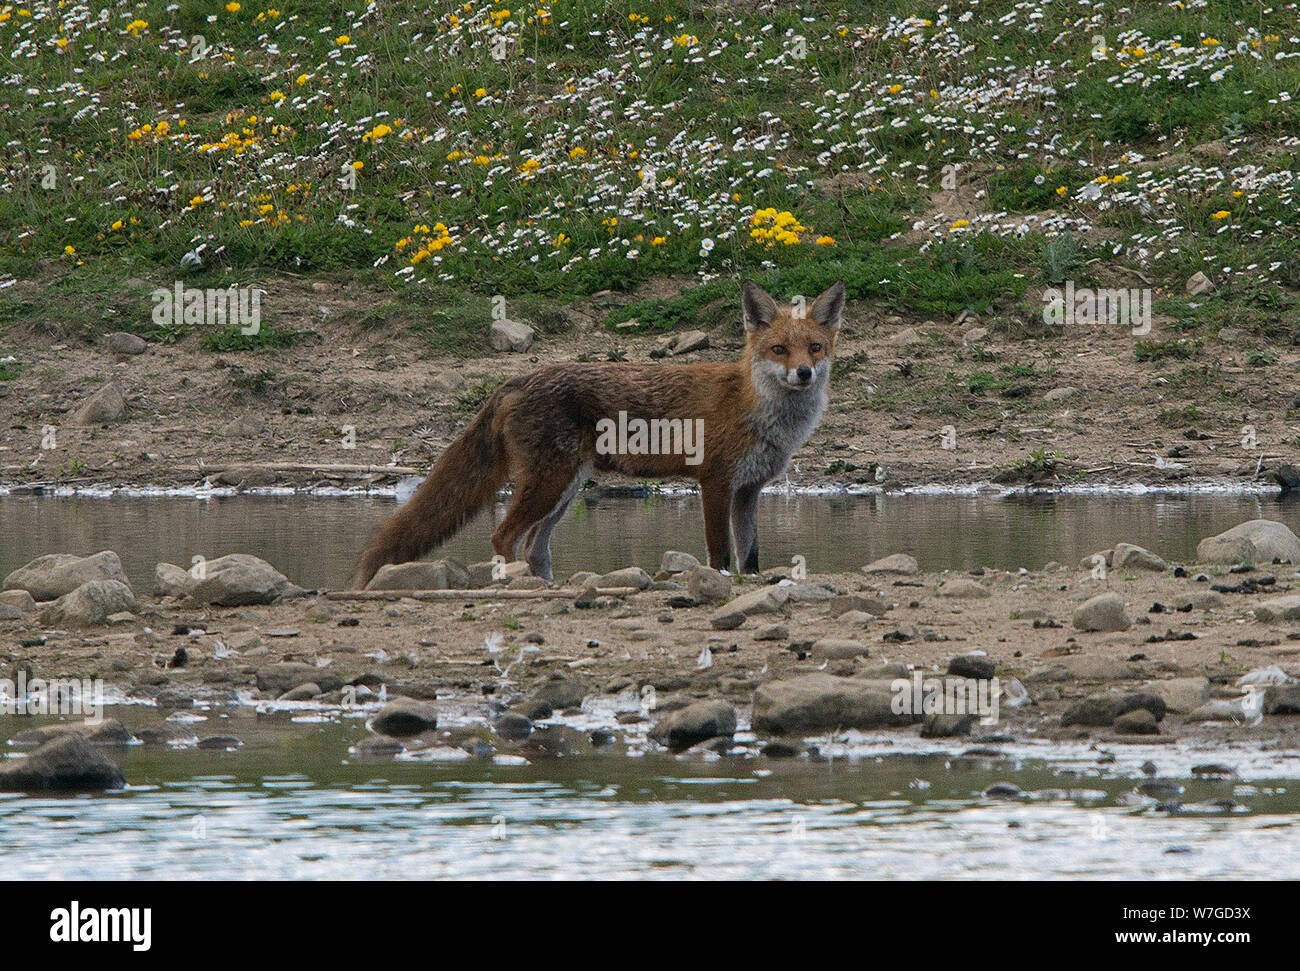 Fox out on hunting expedition near the waters edge of a large pond and looking directly towards the viewer Stock Photo